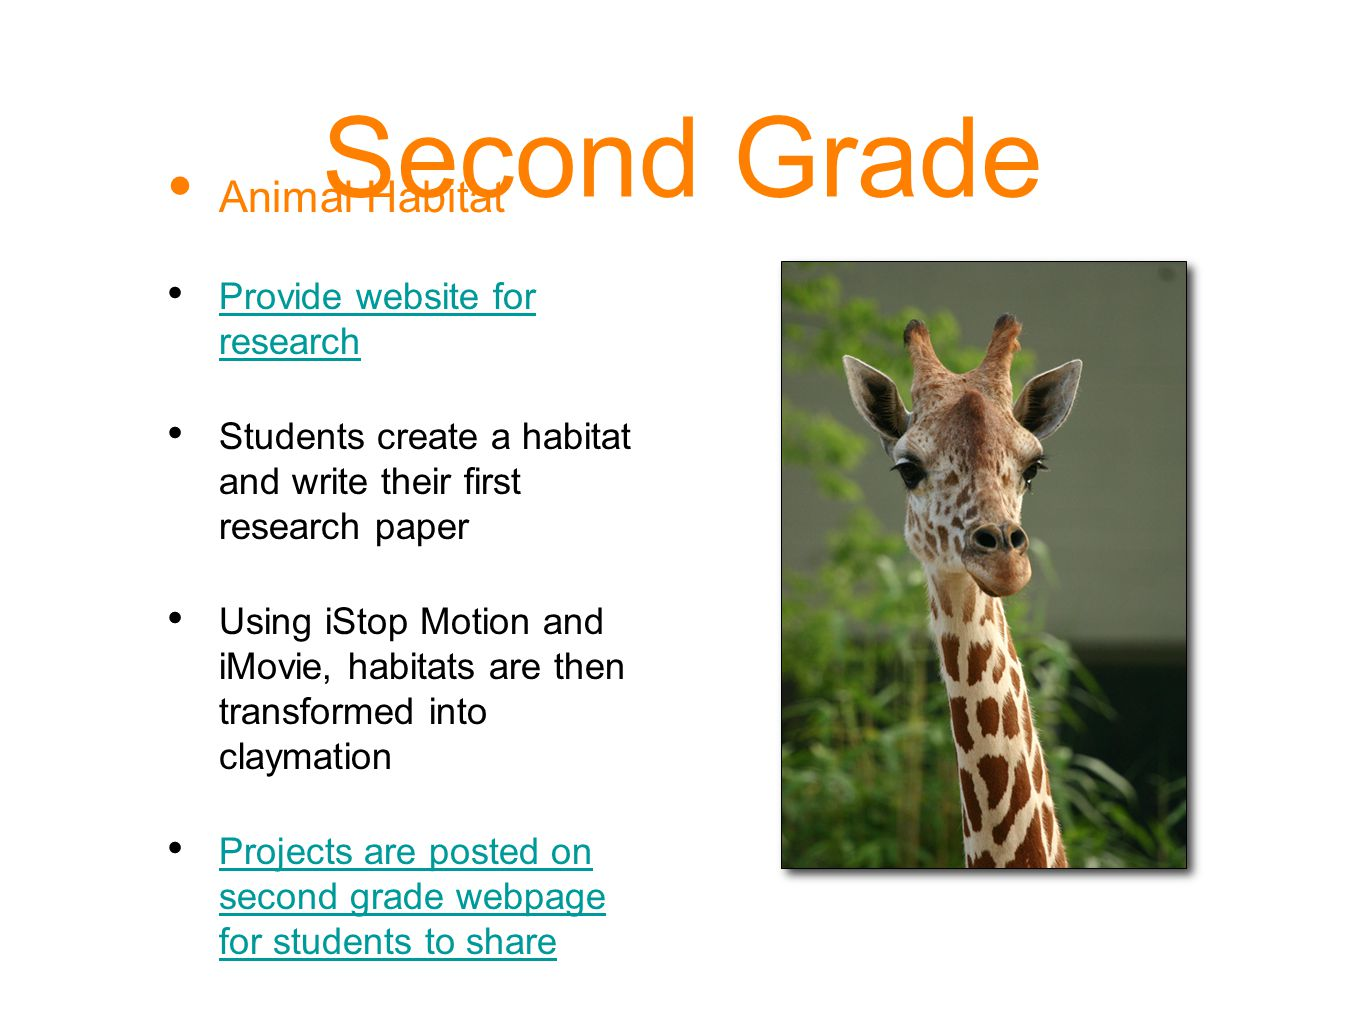 Second Grade Animal Habitat Provide website for research